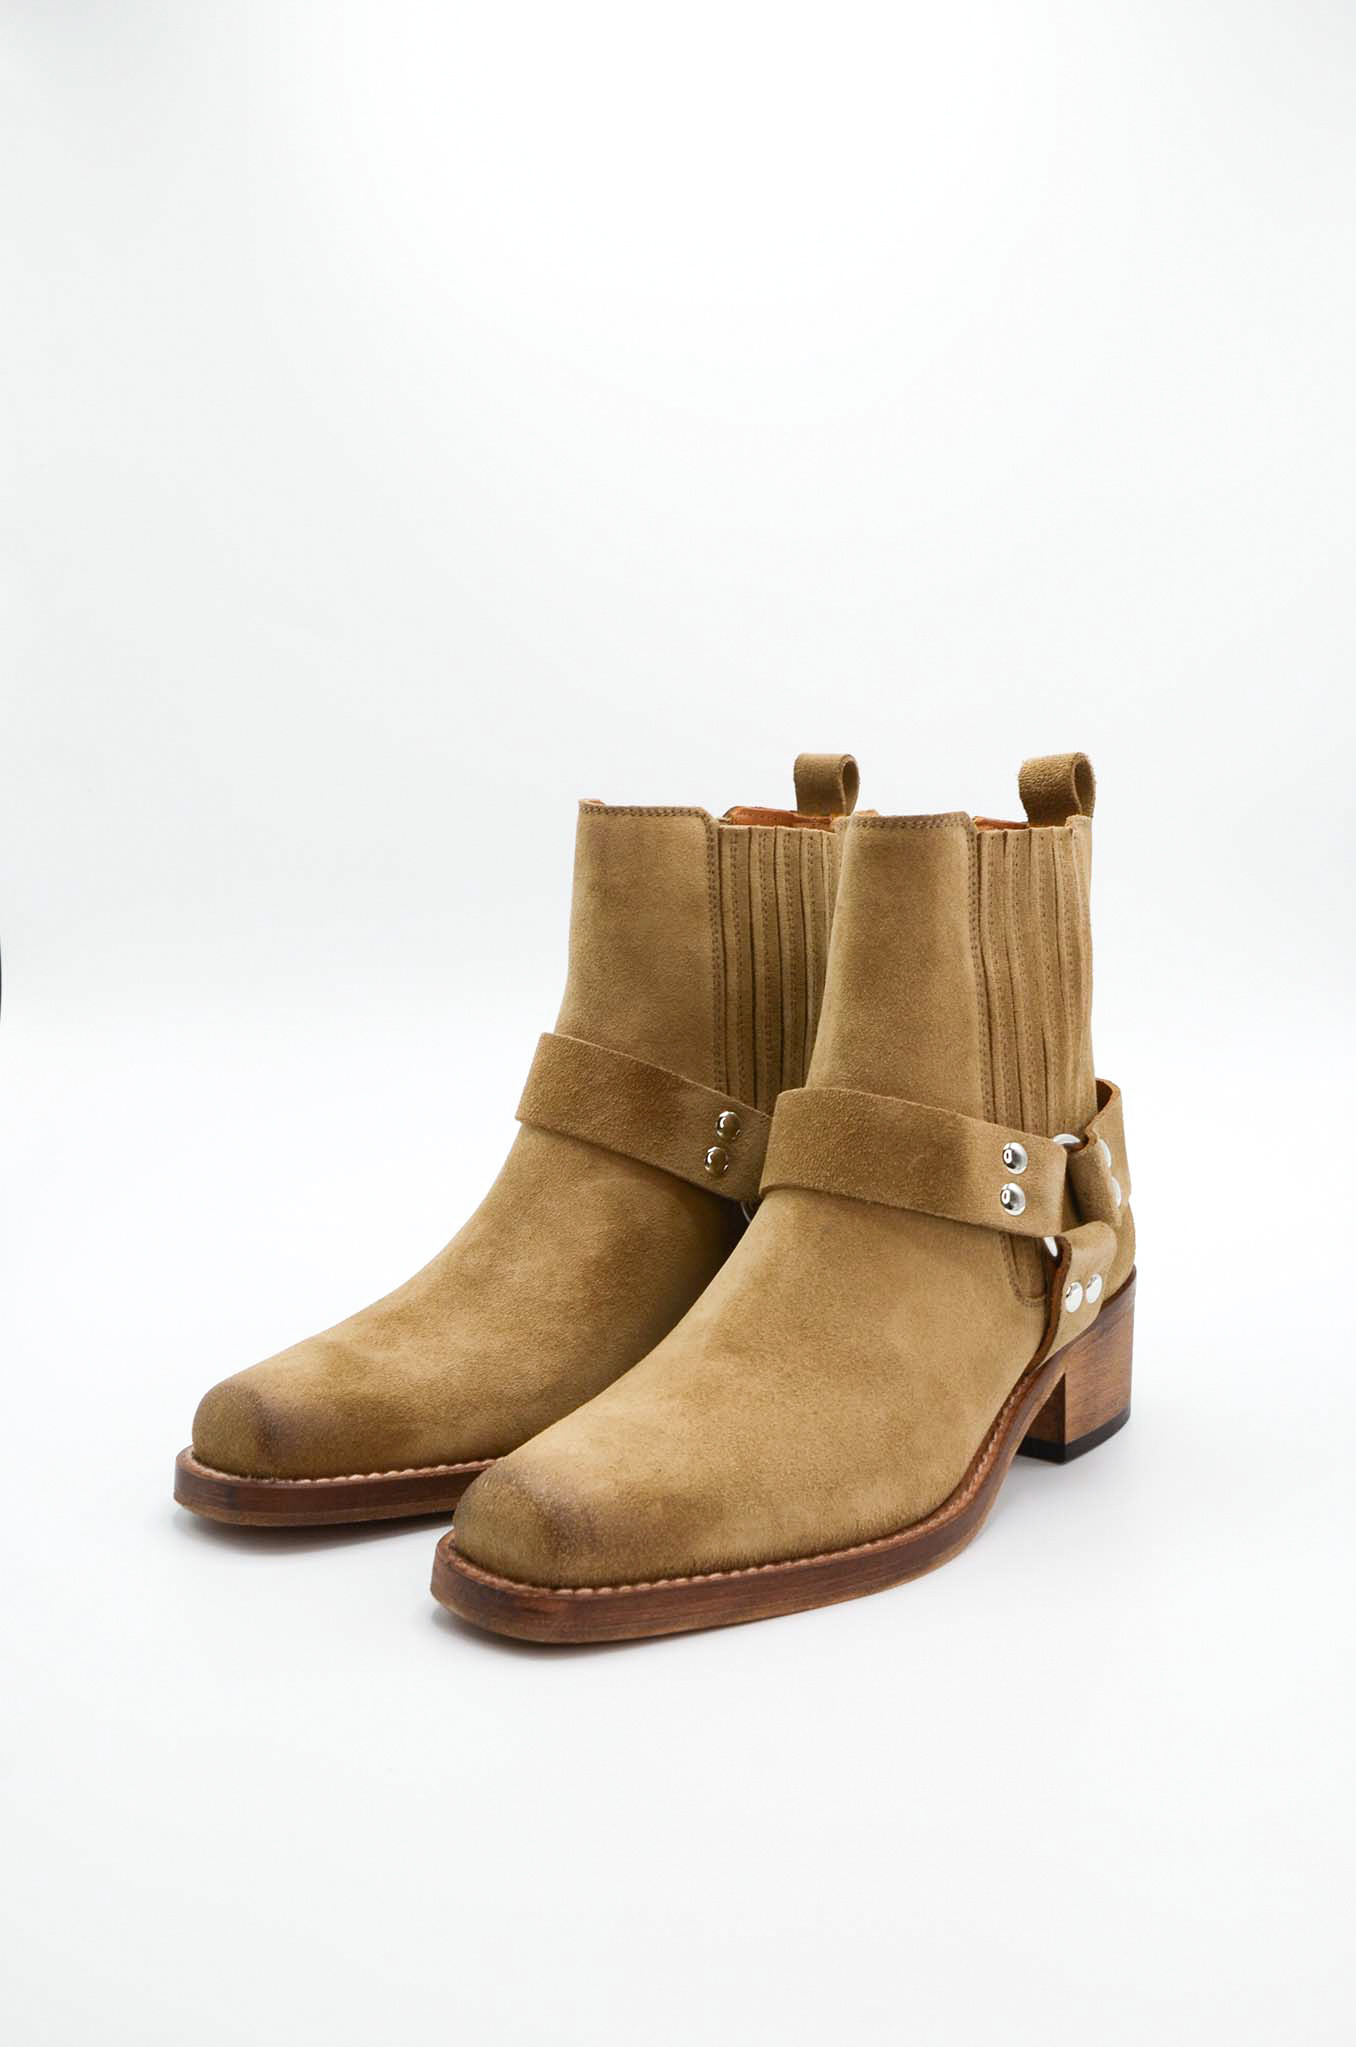 ANKLE BOOTS IN SAND-4